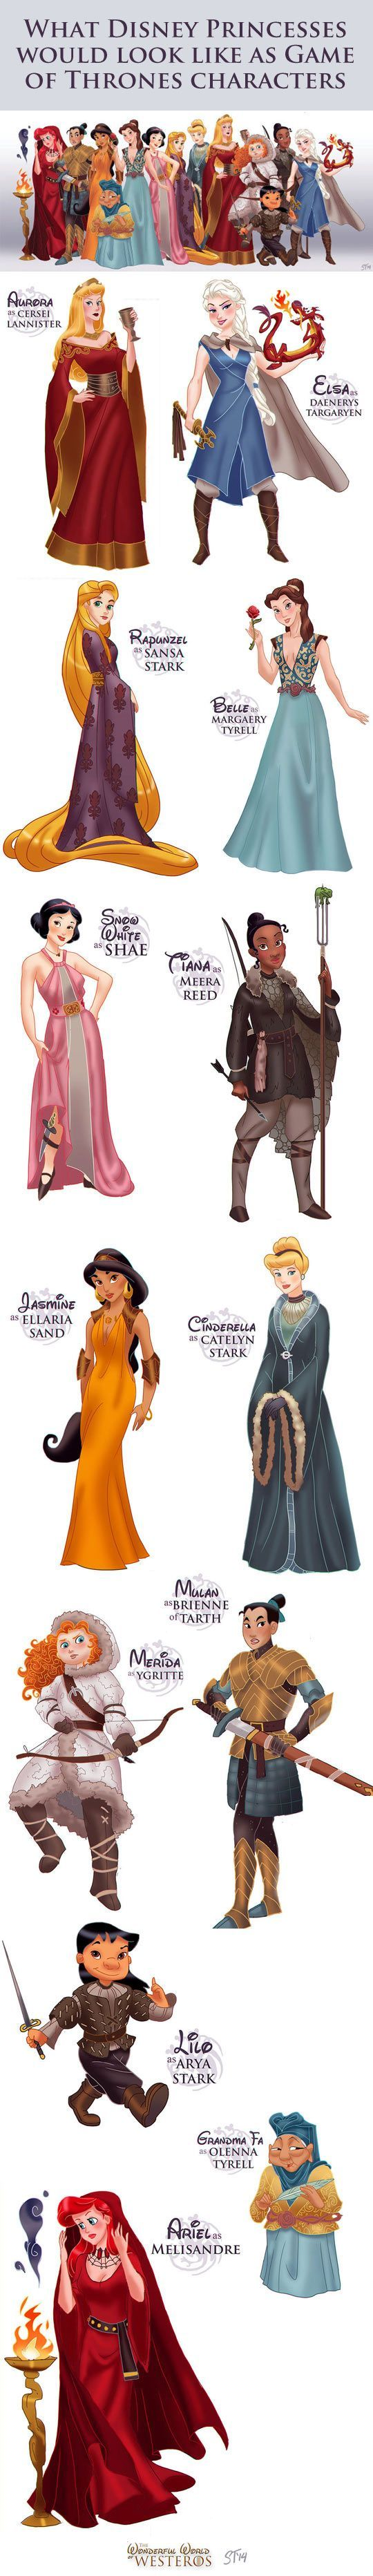 The Disney version of Game of Thrones... - The Meta Picture